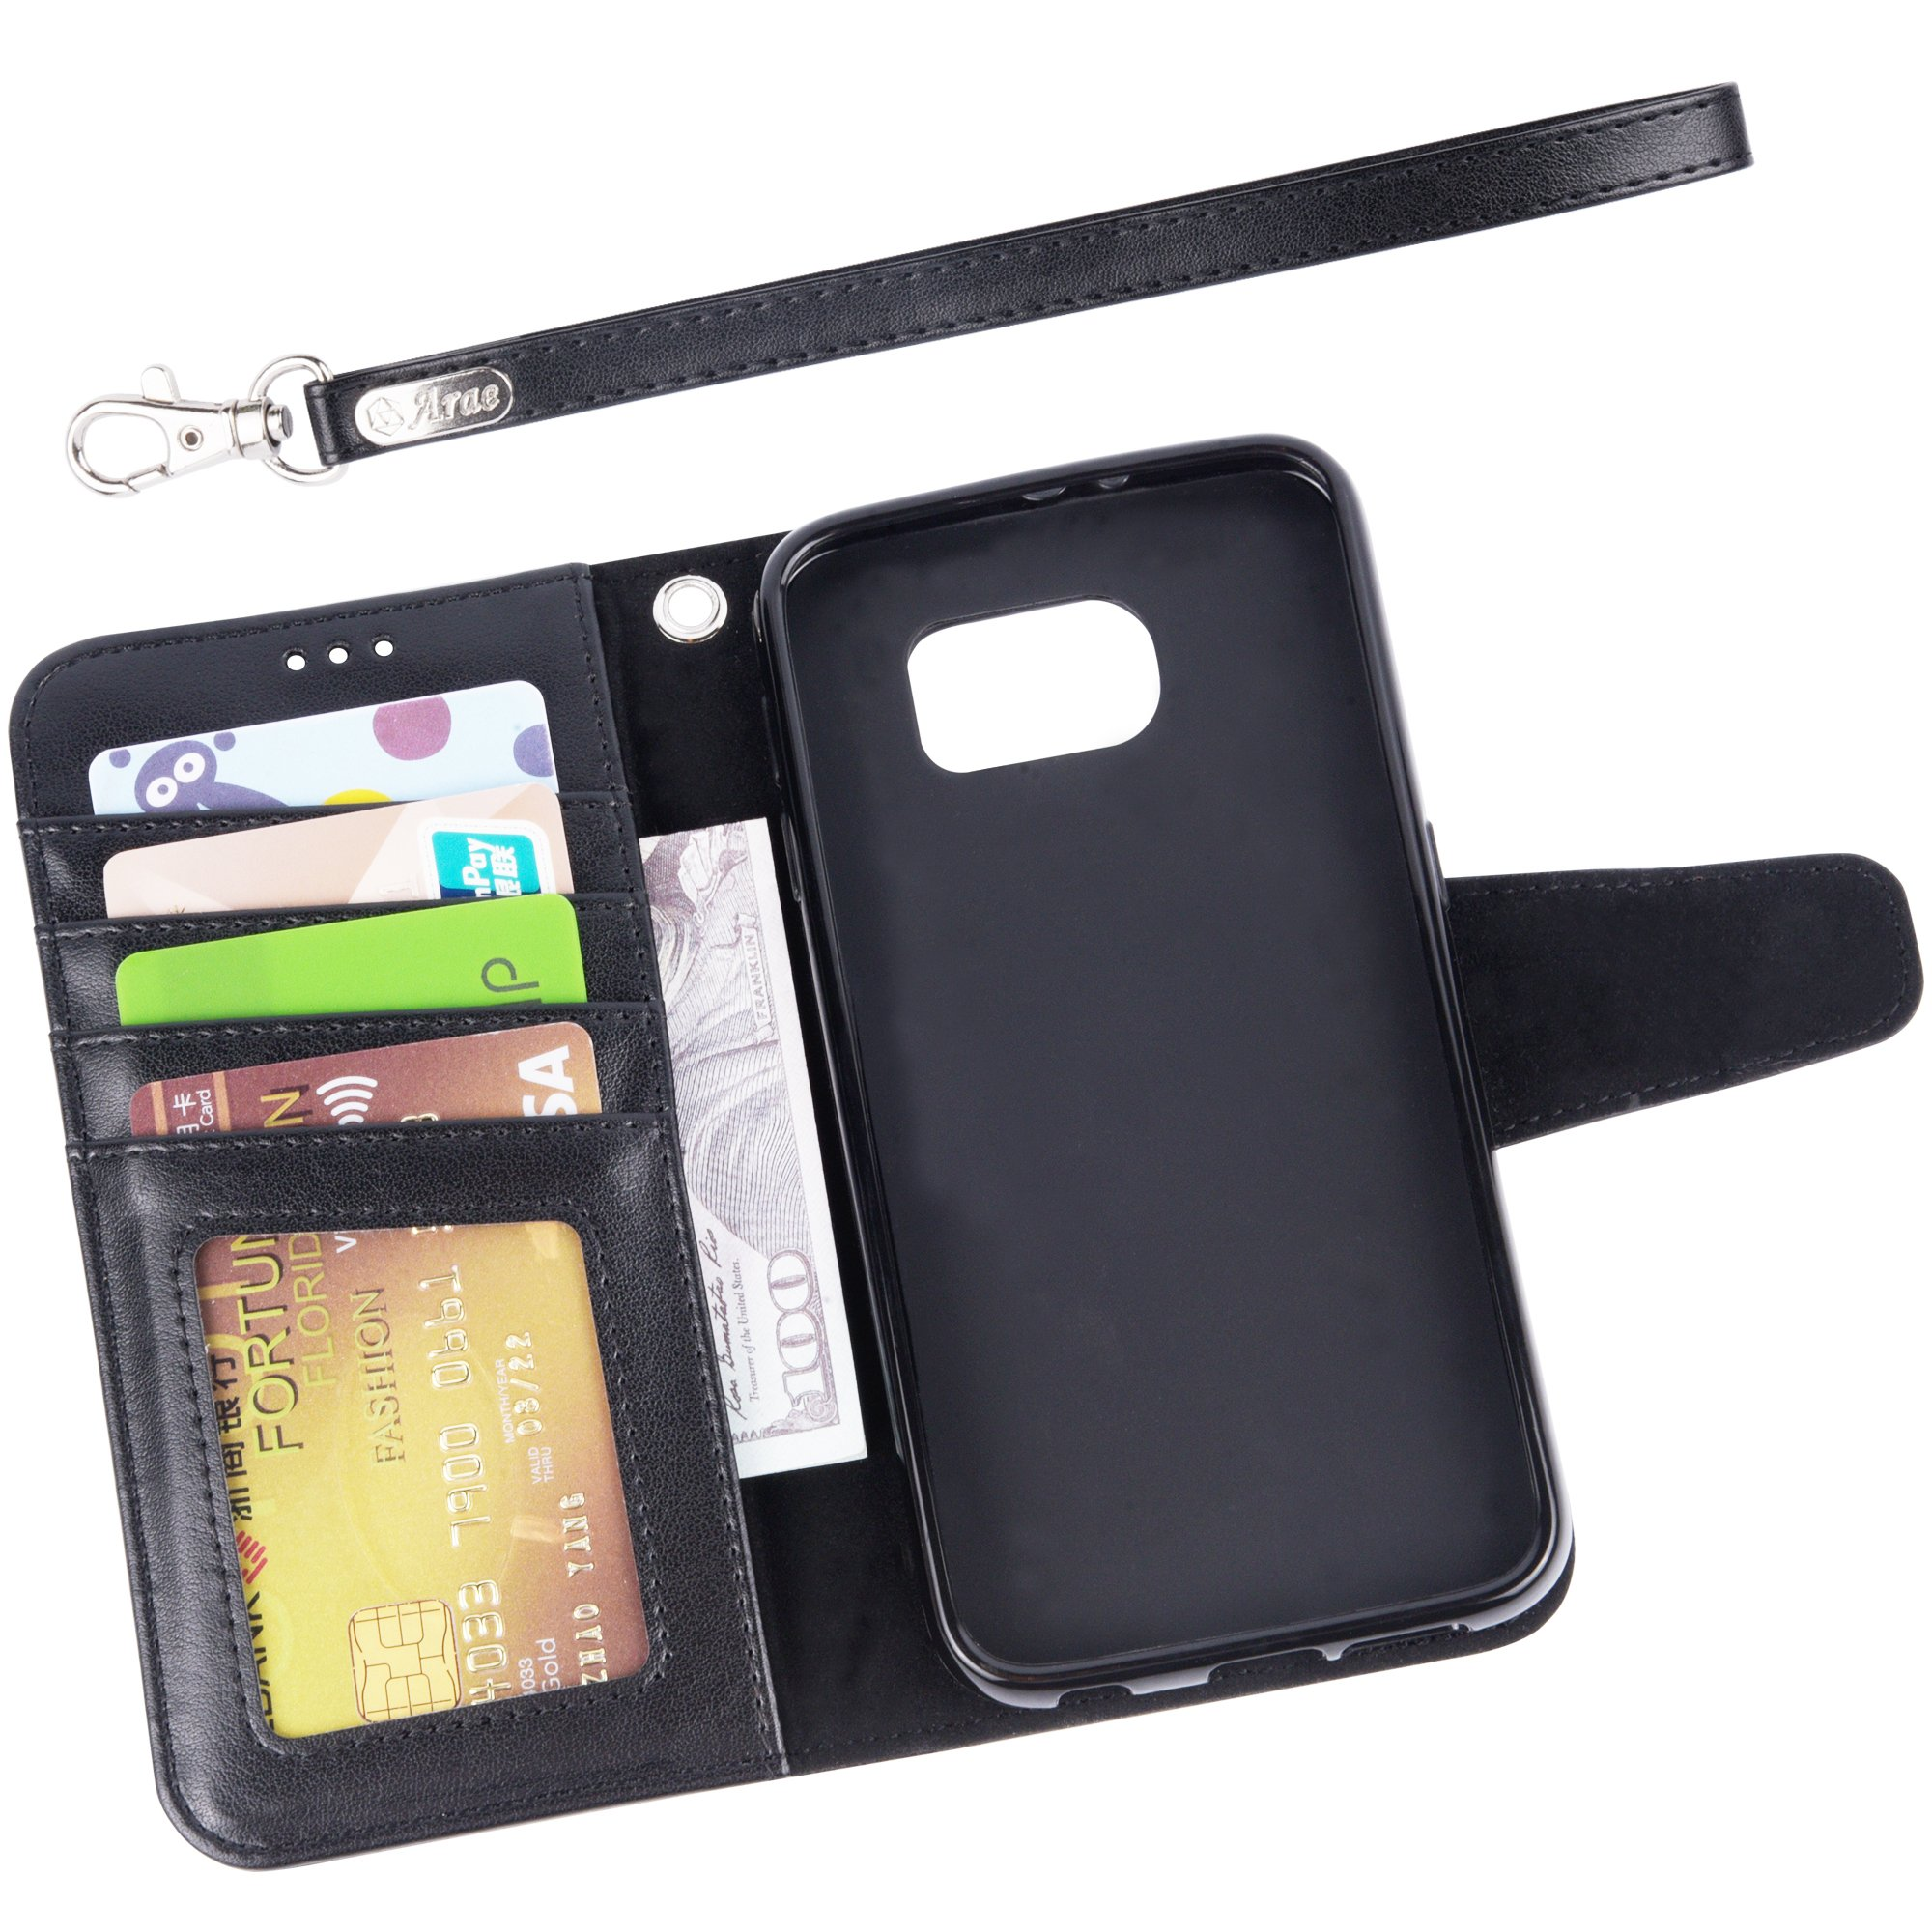 Arae Galaxy S6 Case, Samsung Galaxy S6 wallet case, [Wrist Strap] Flip Folio [Kickstand Feature] PU leather wallet case with ID&Credit Card Pockets For Samsung Galaxy S6 (Black) by Arae (Image #3)